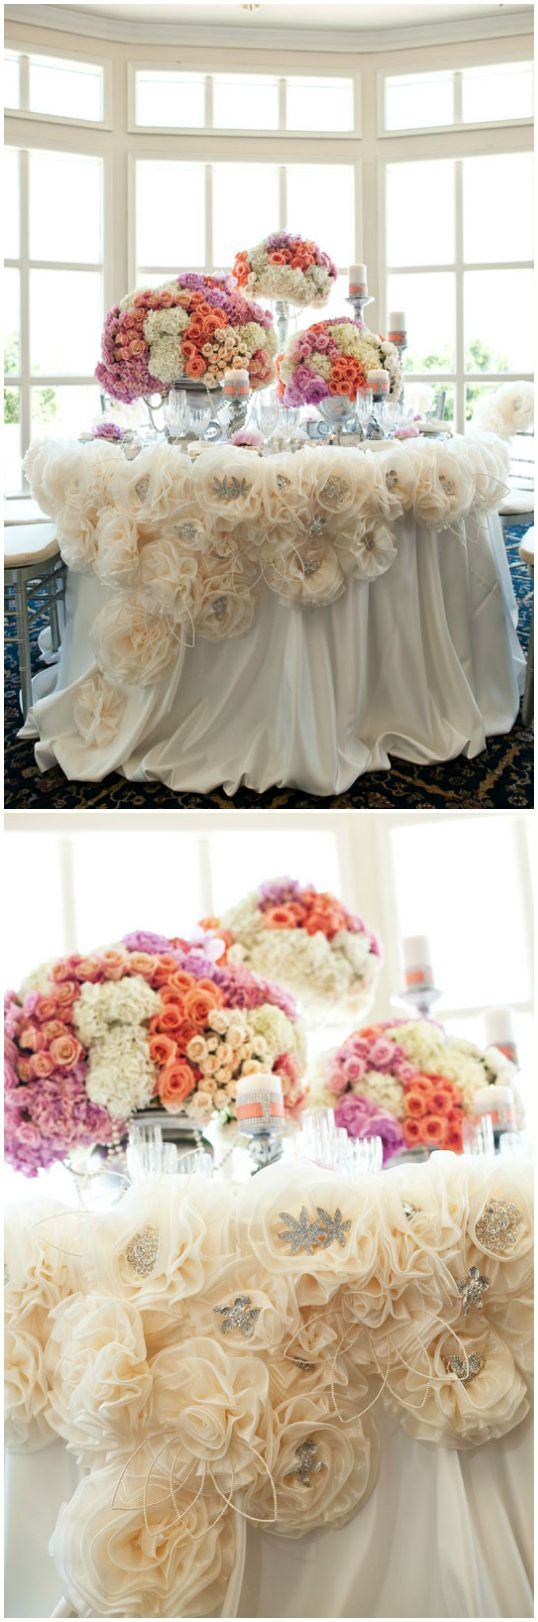 ♡ Wedding Story ♡ Wedding ● Tablescape & Reception Décor